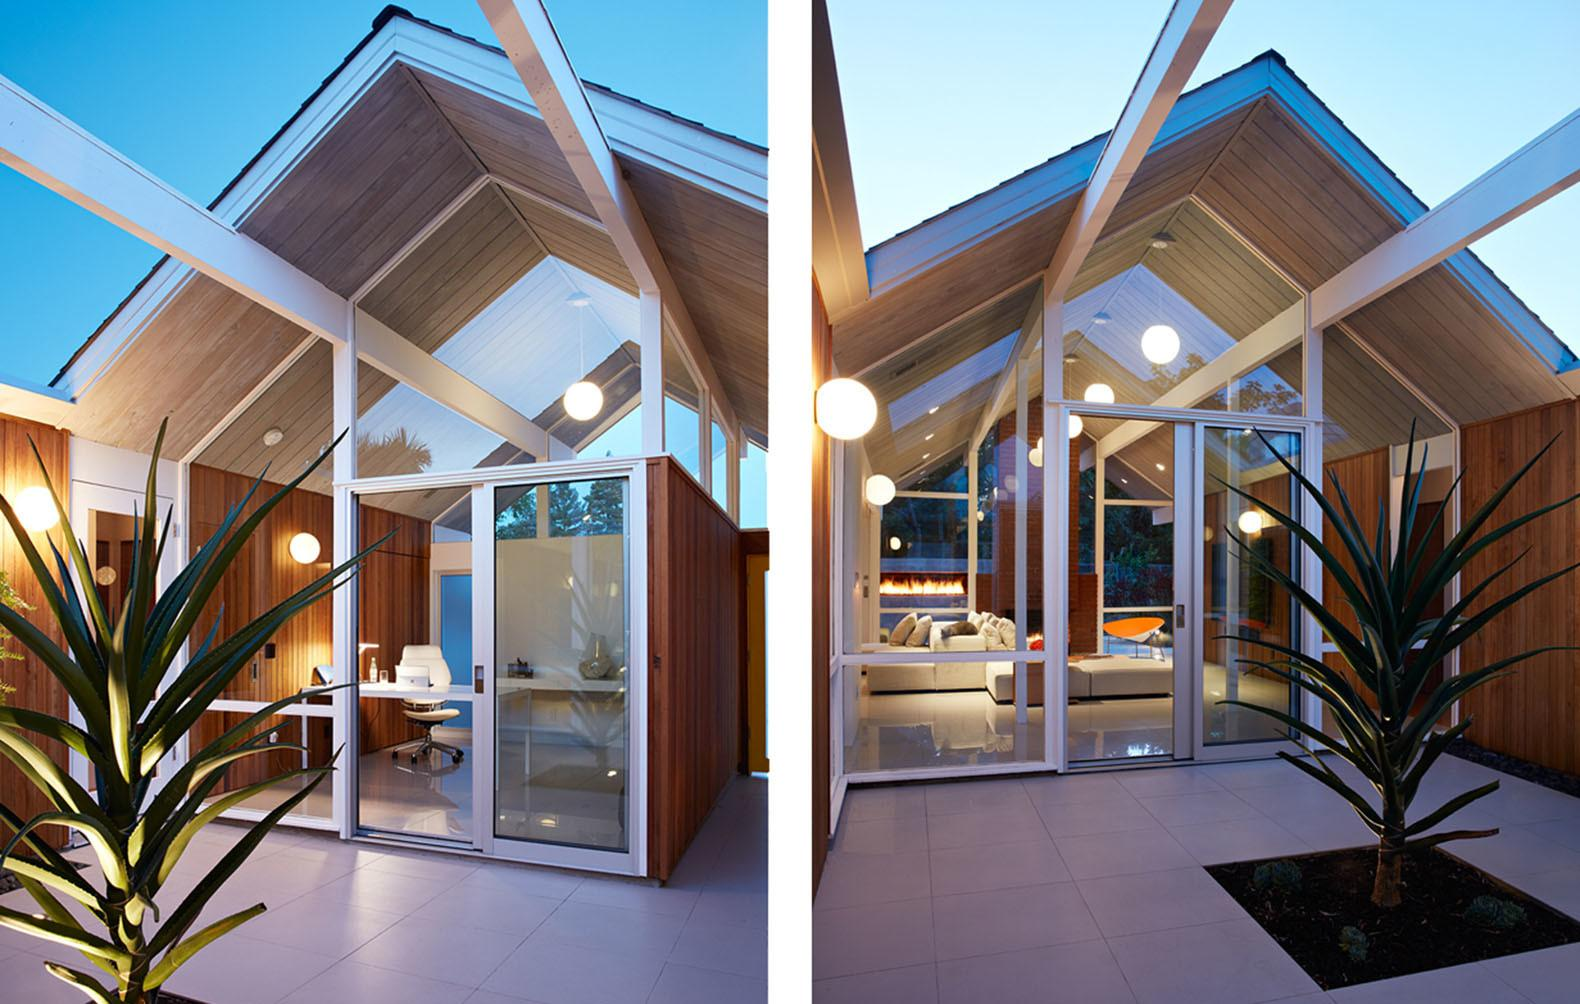 Remodeled Eichler House Oasis Calm Heart